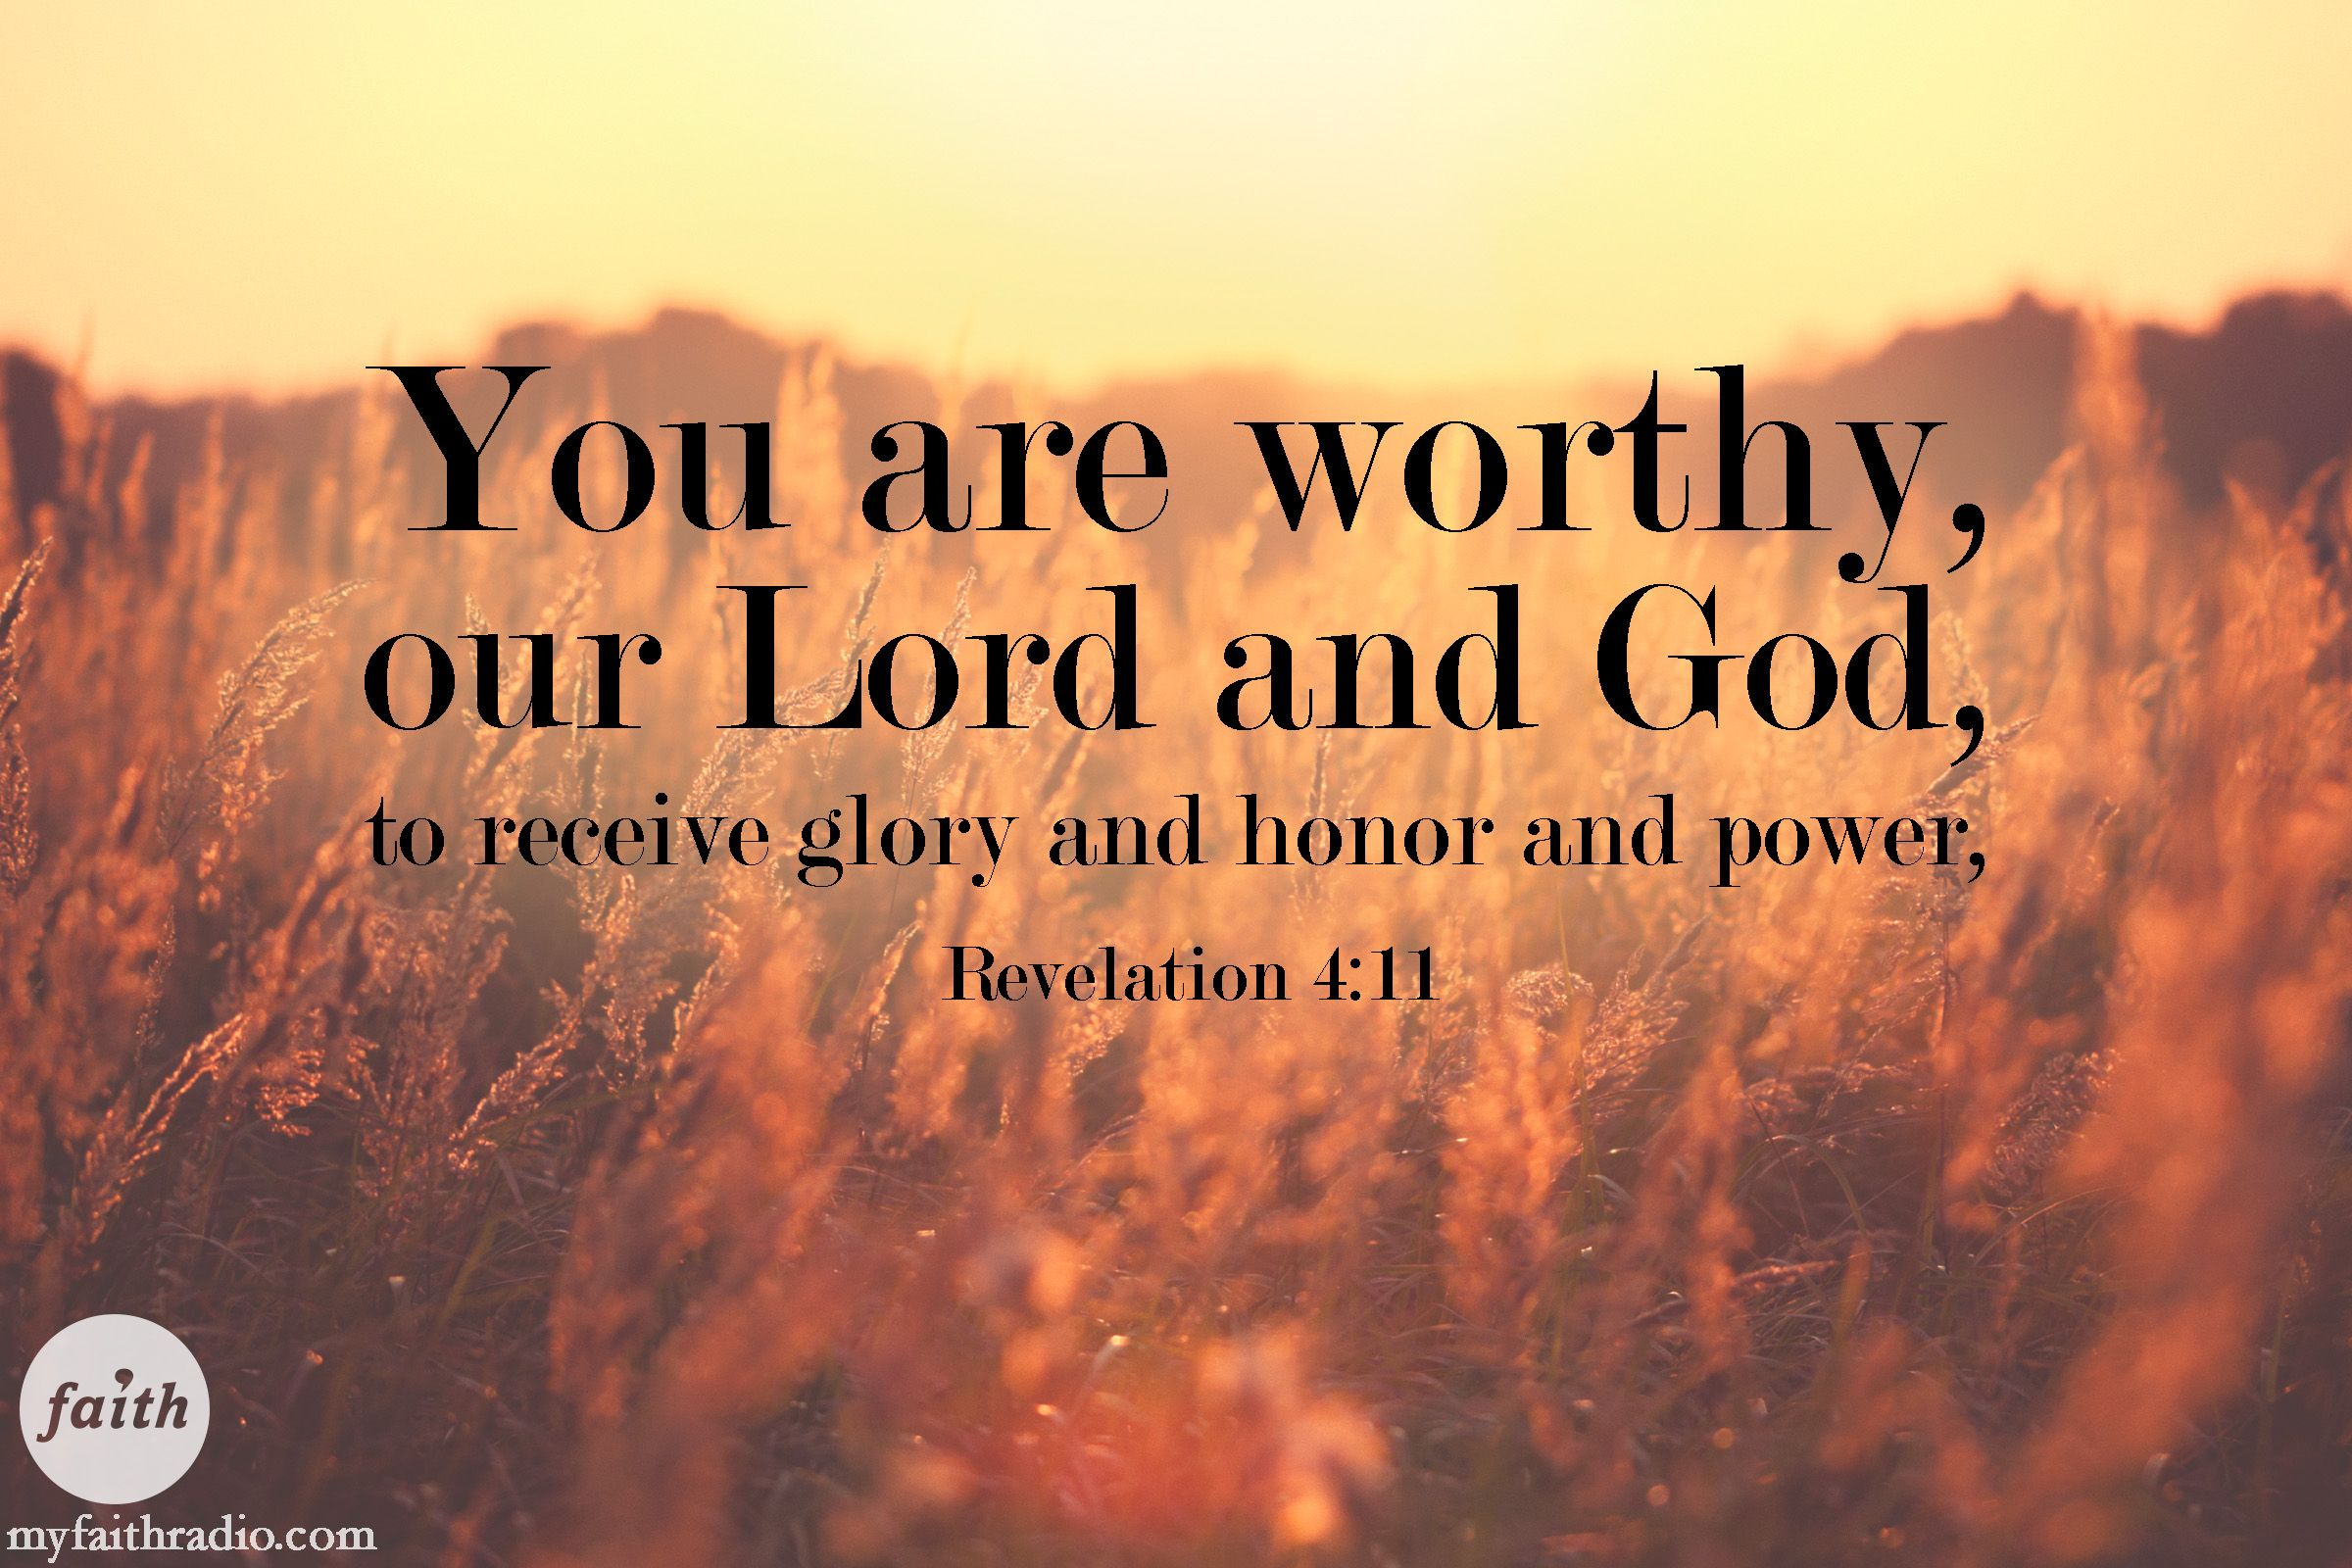 """Is He Worthy?"" by… Chris Tomlin?"